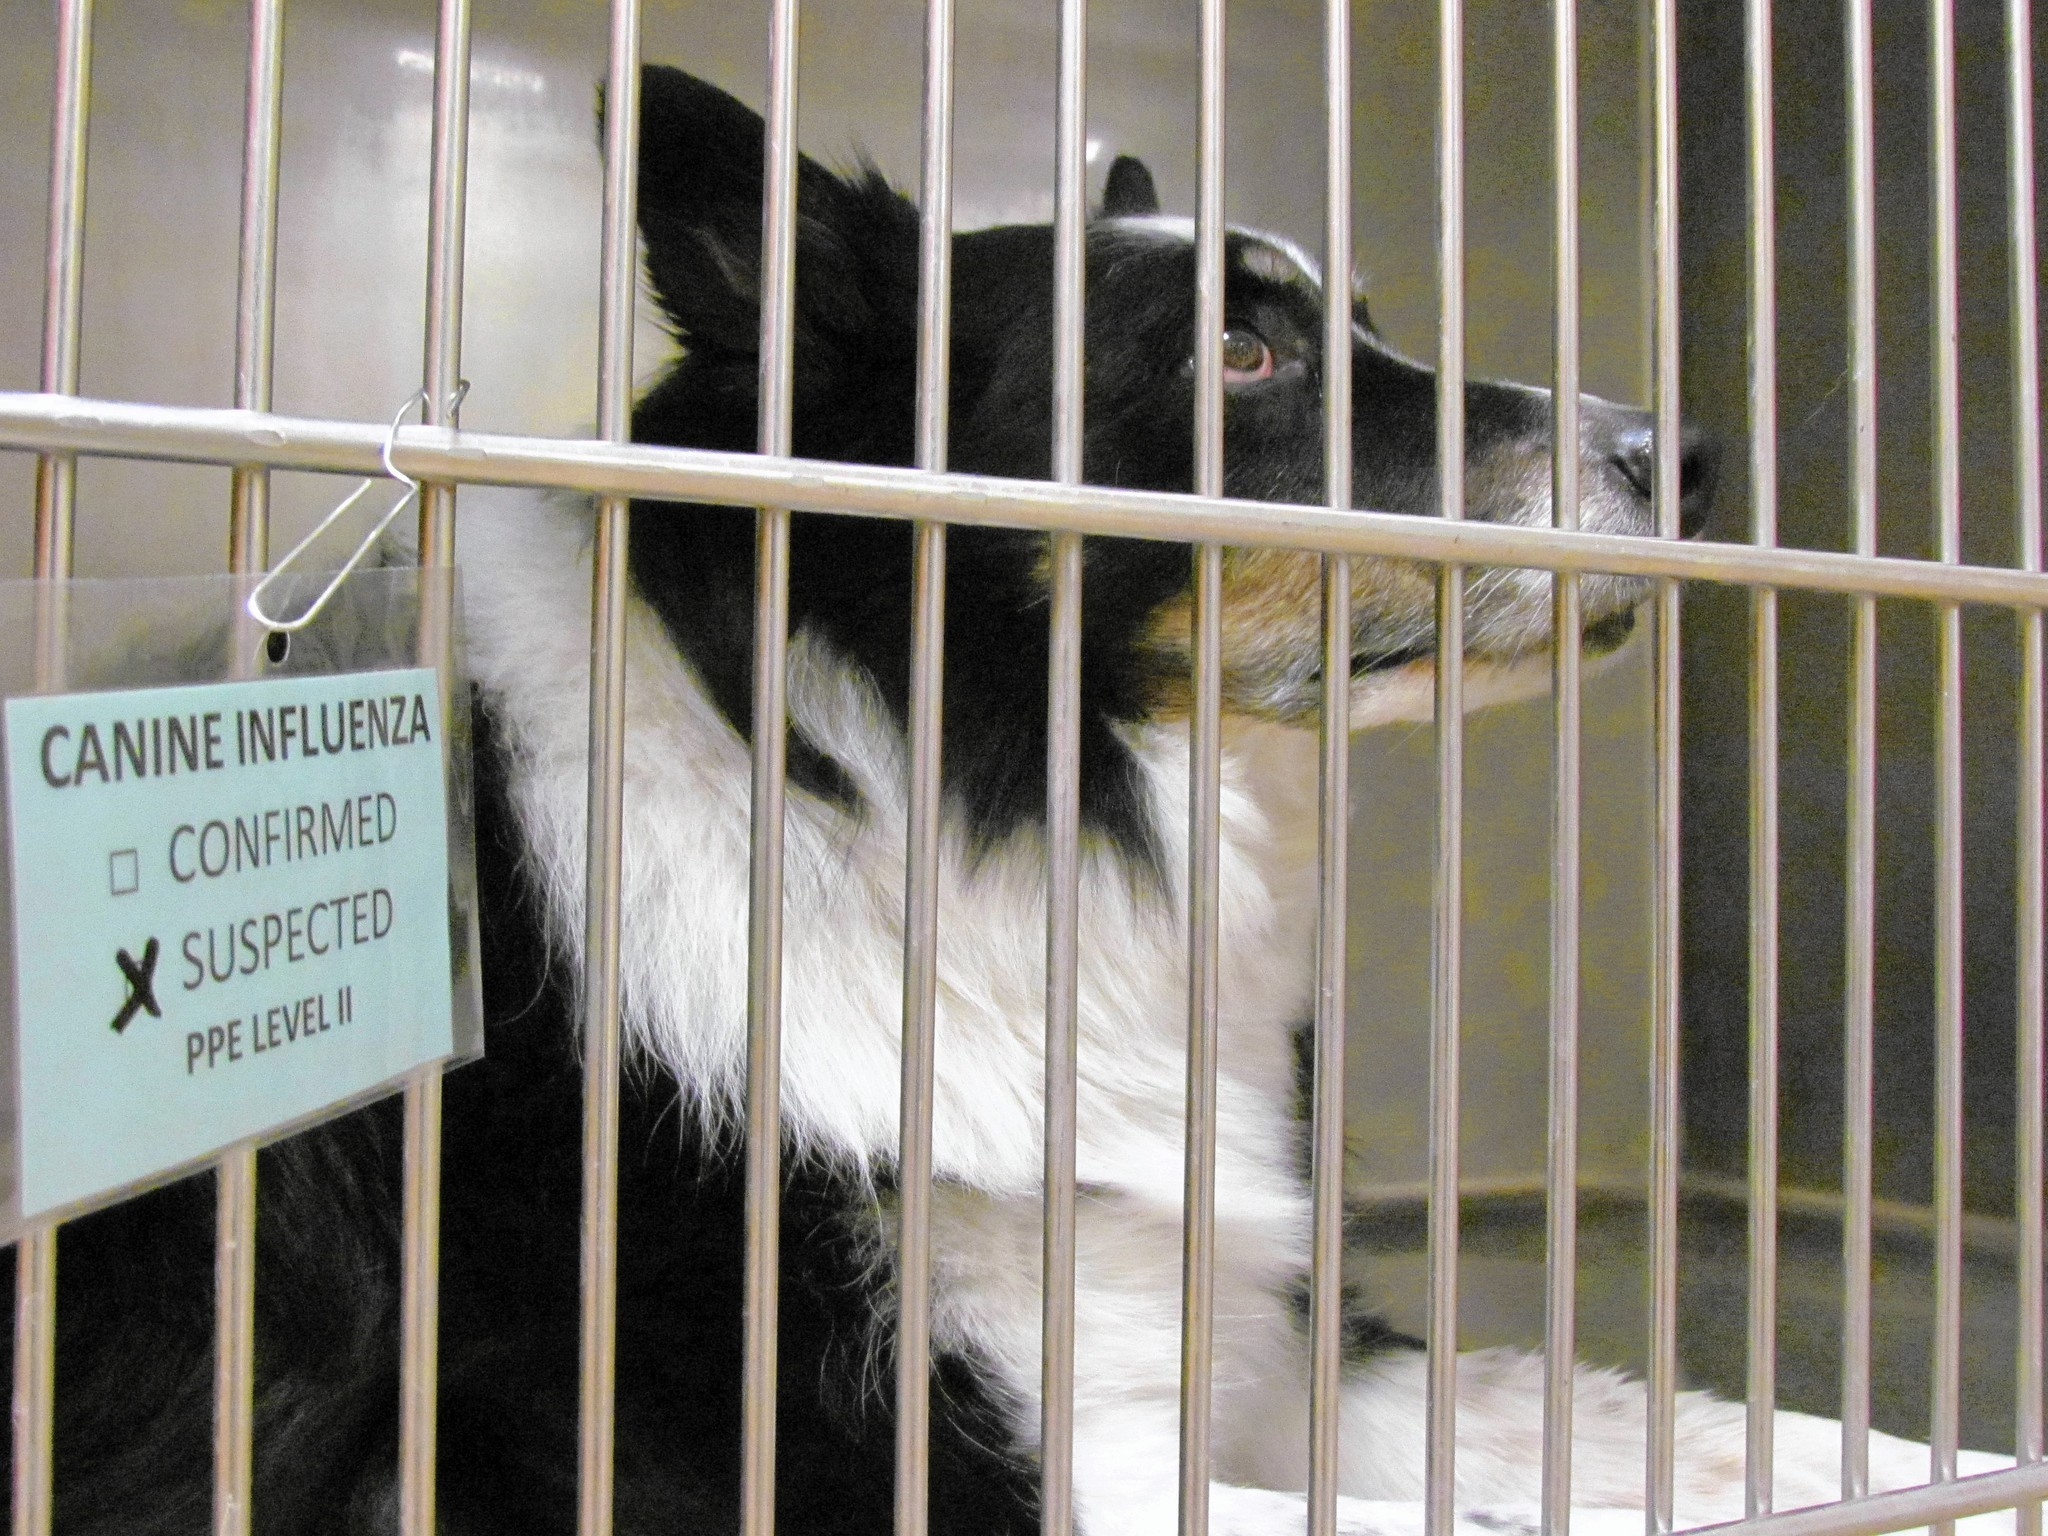 Update on Canine Influenza (Dog Flu) Outbreak Reported in Chicago Area